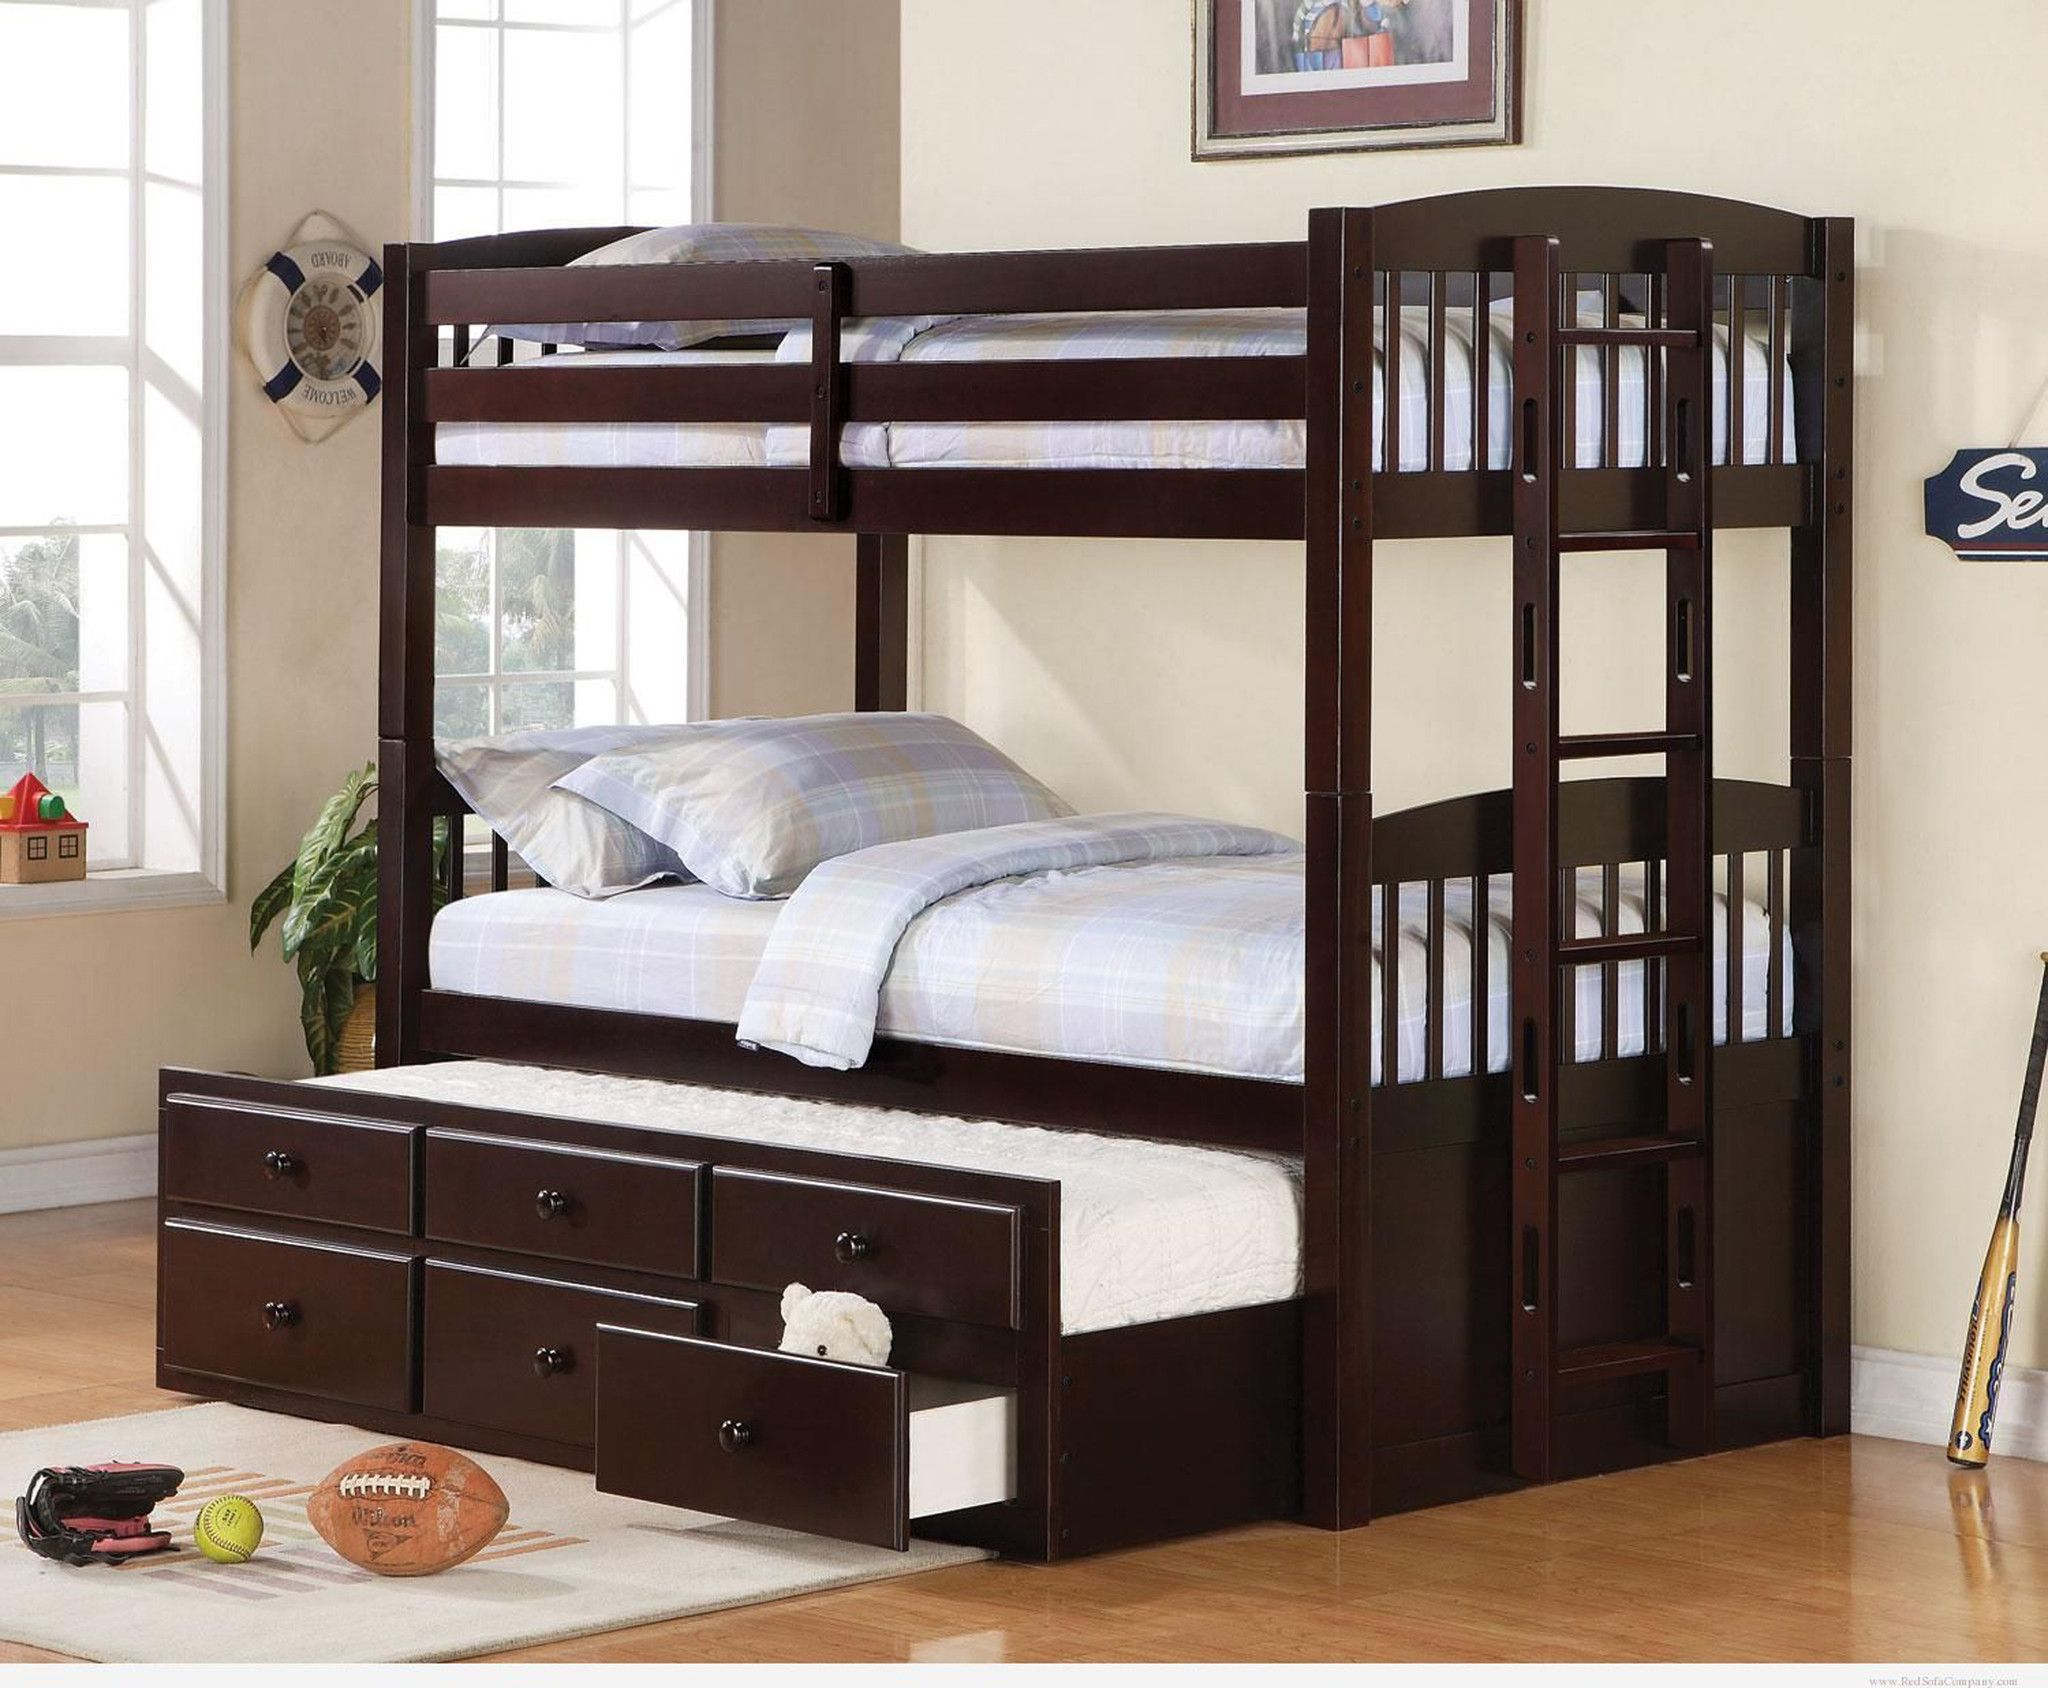 Kids Twin Over Twin Triple Bunk Bed With Trundle And Storage With